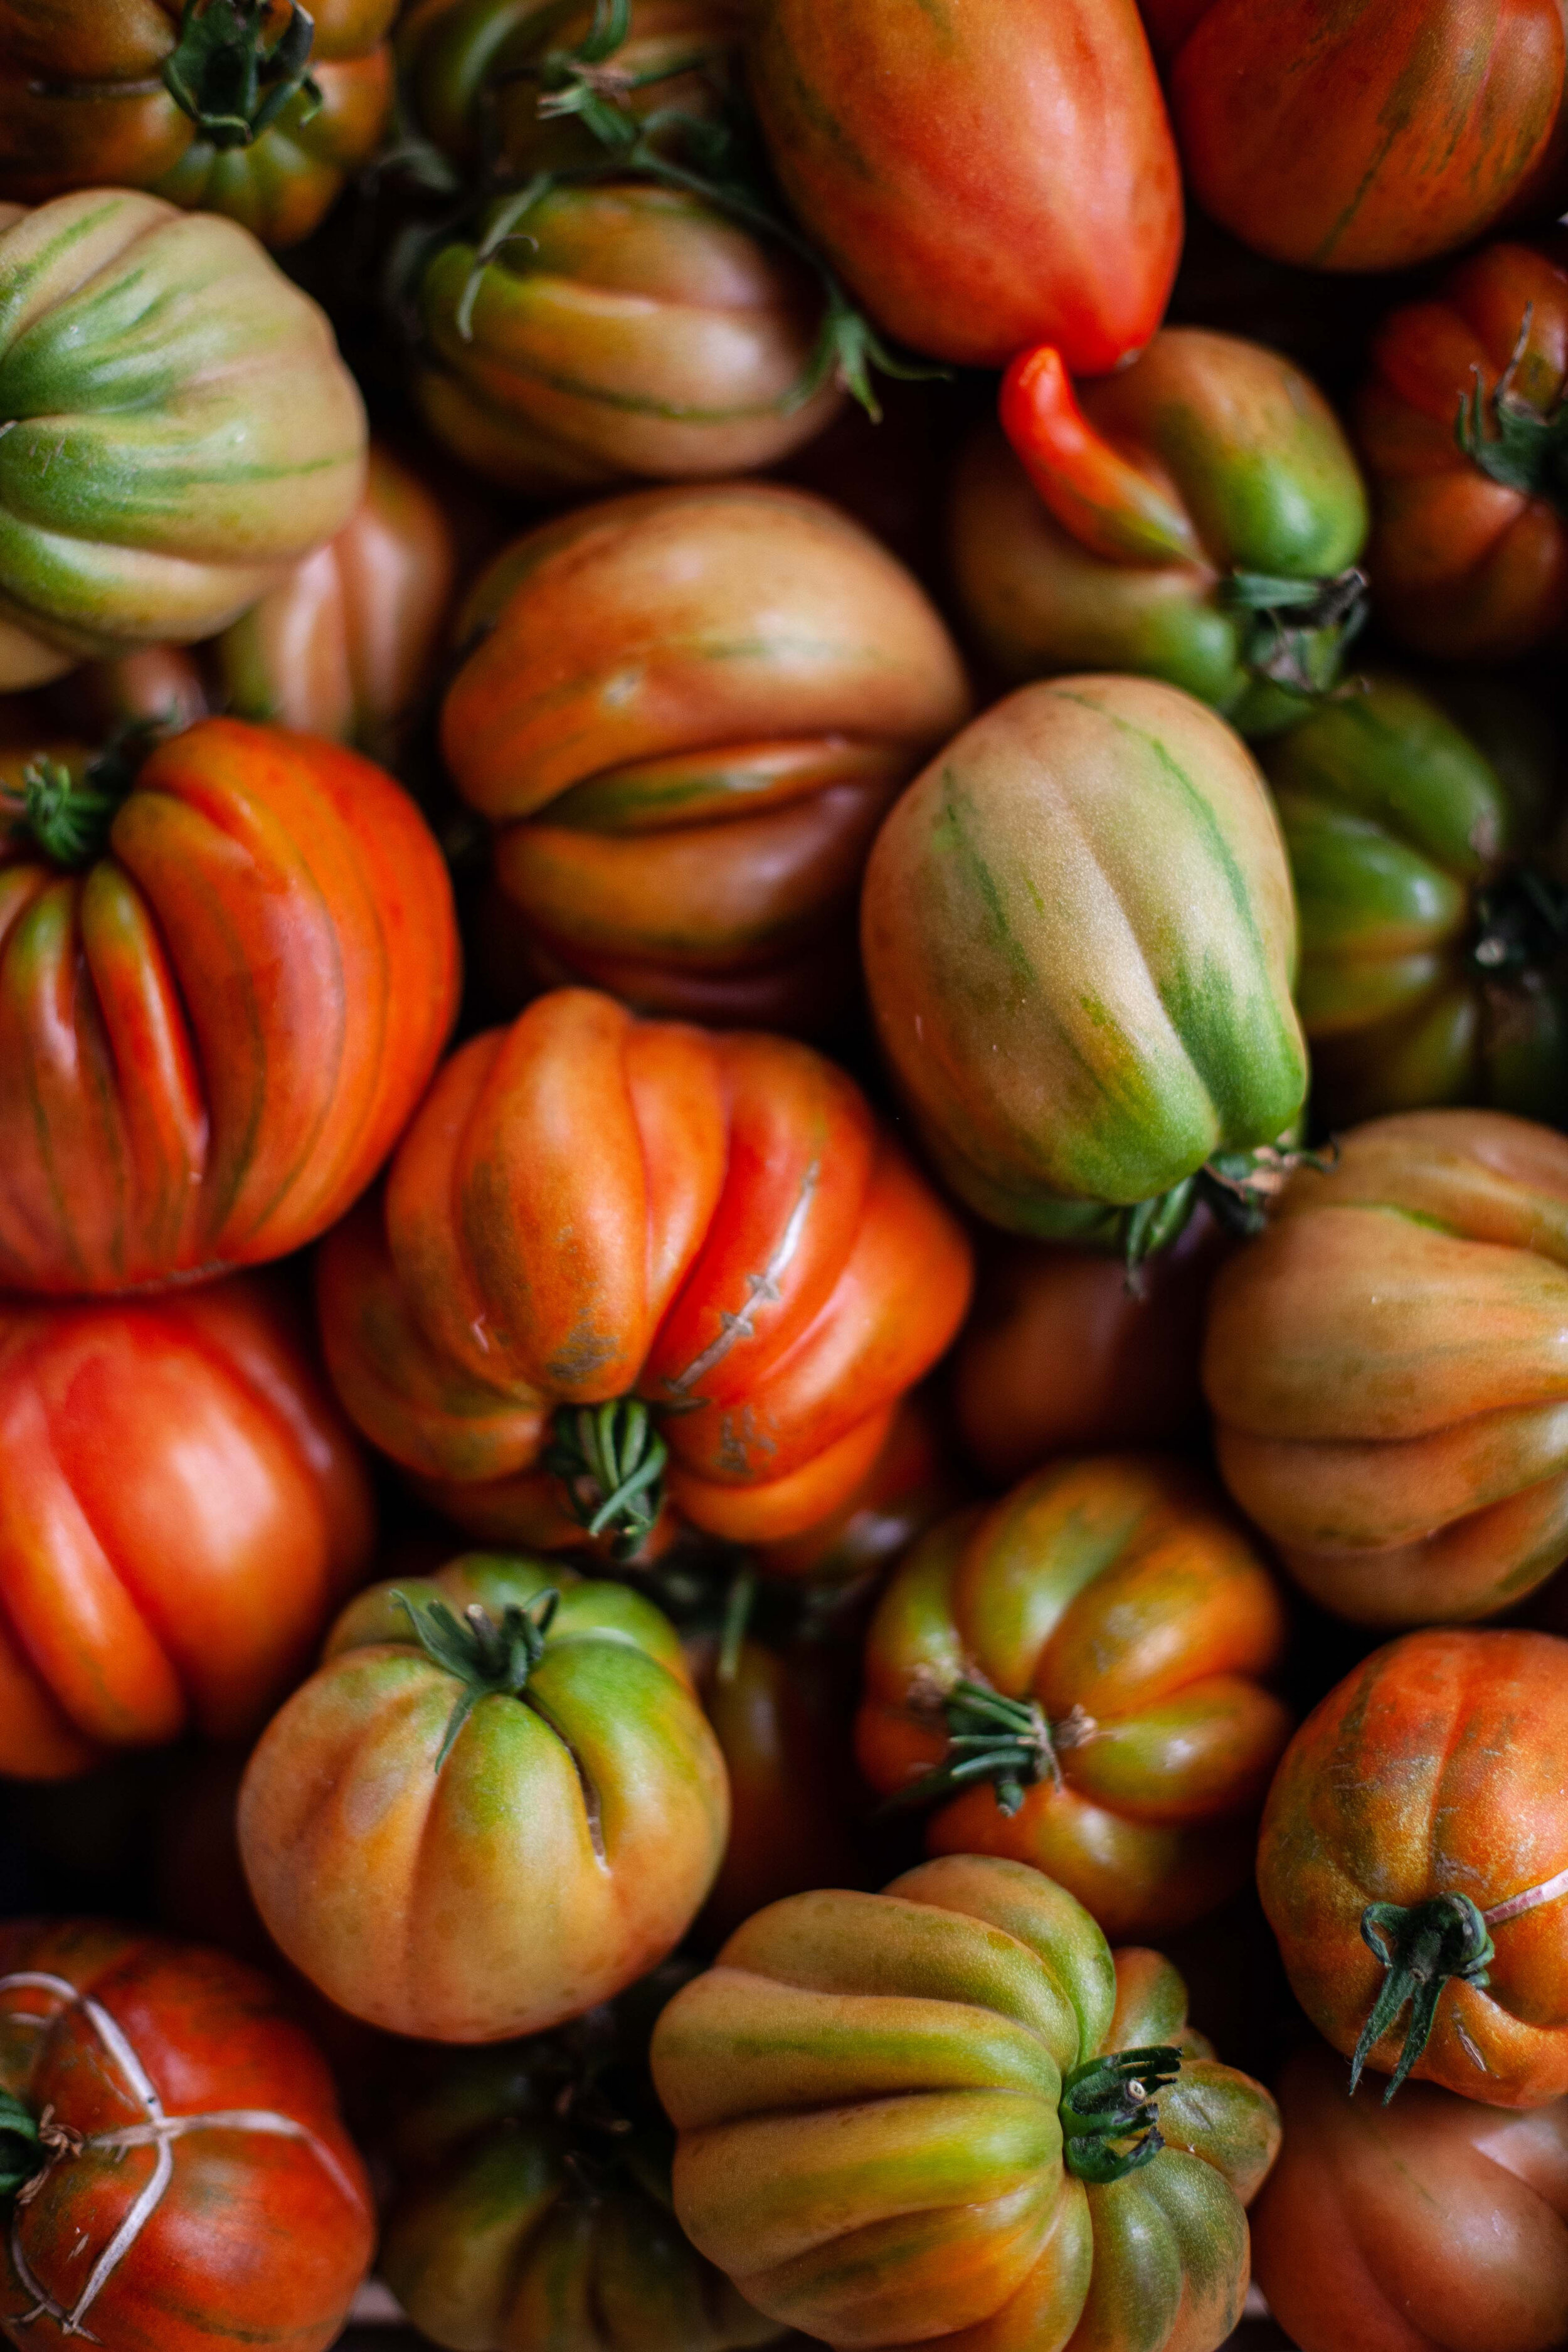 Foods that will save the planet article. Image of tomatoes.jpg